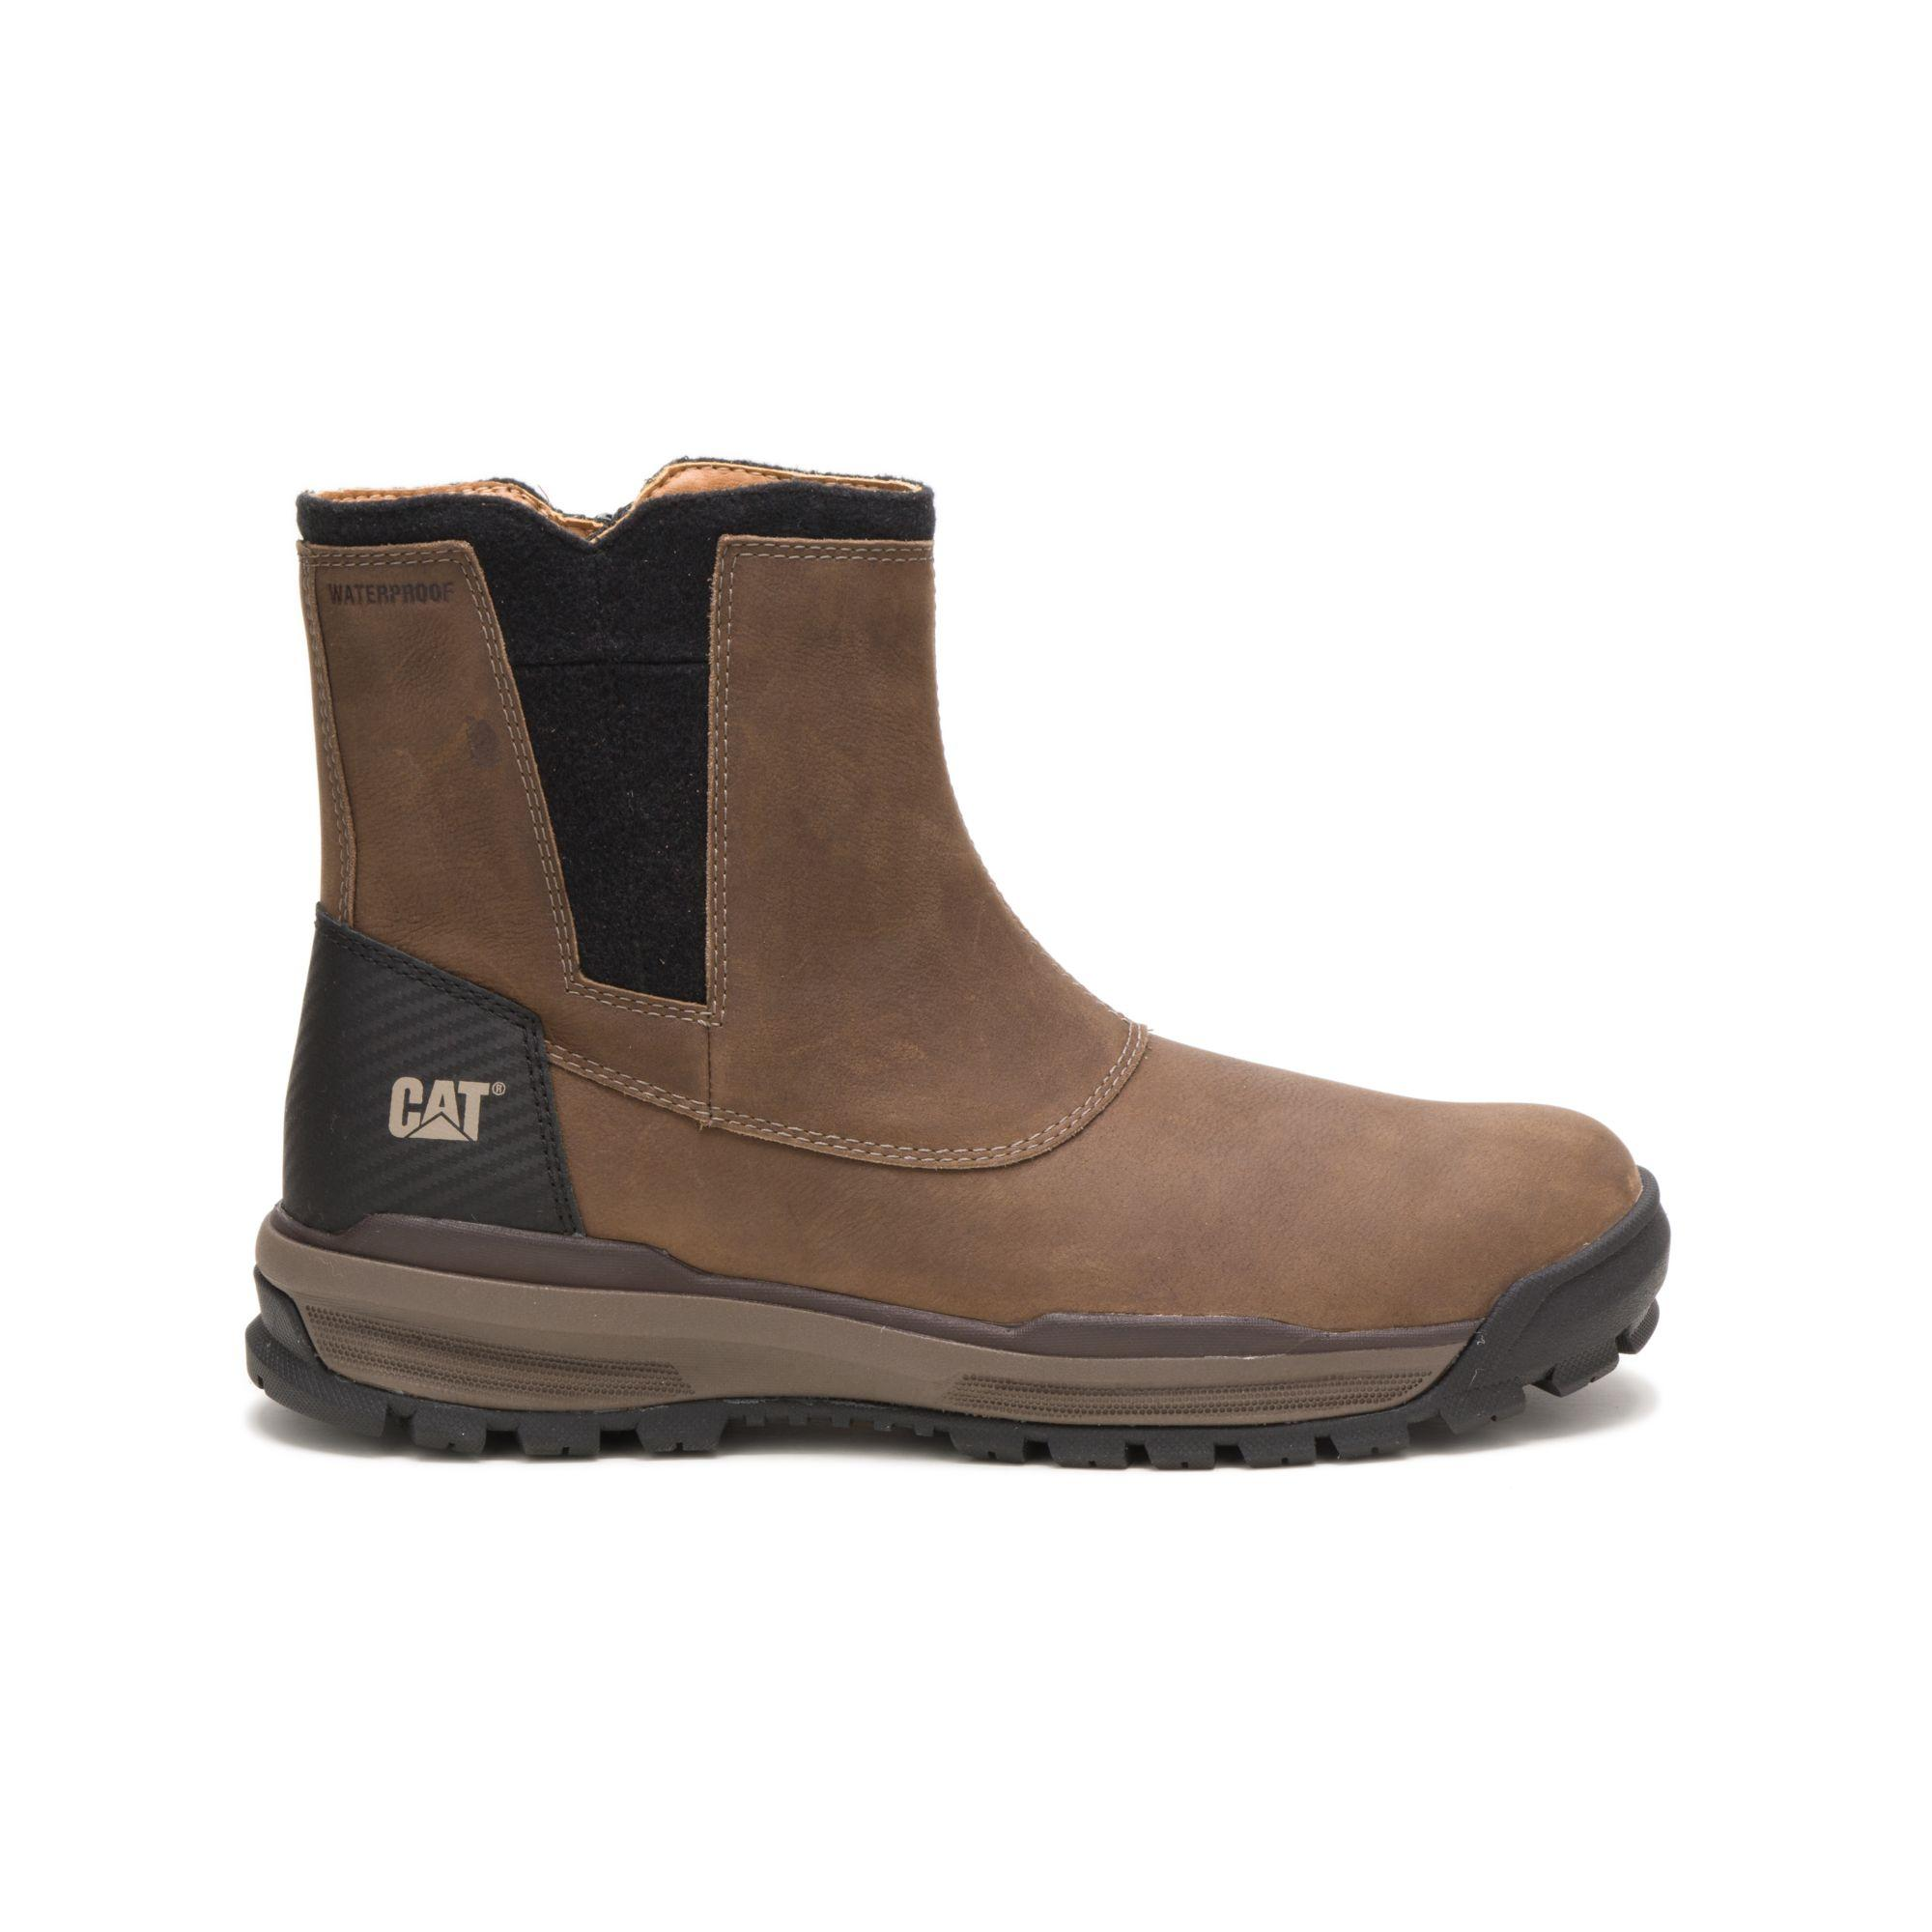 CAT Caterpillar Stiction Hi Ice Ankle Boot Mens Waterproof Hiker Brown Lace Shoe